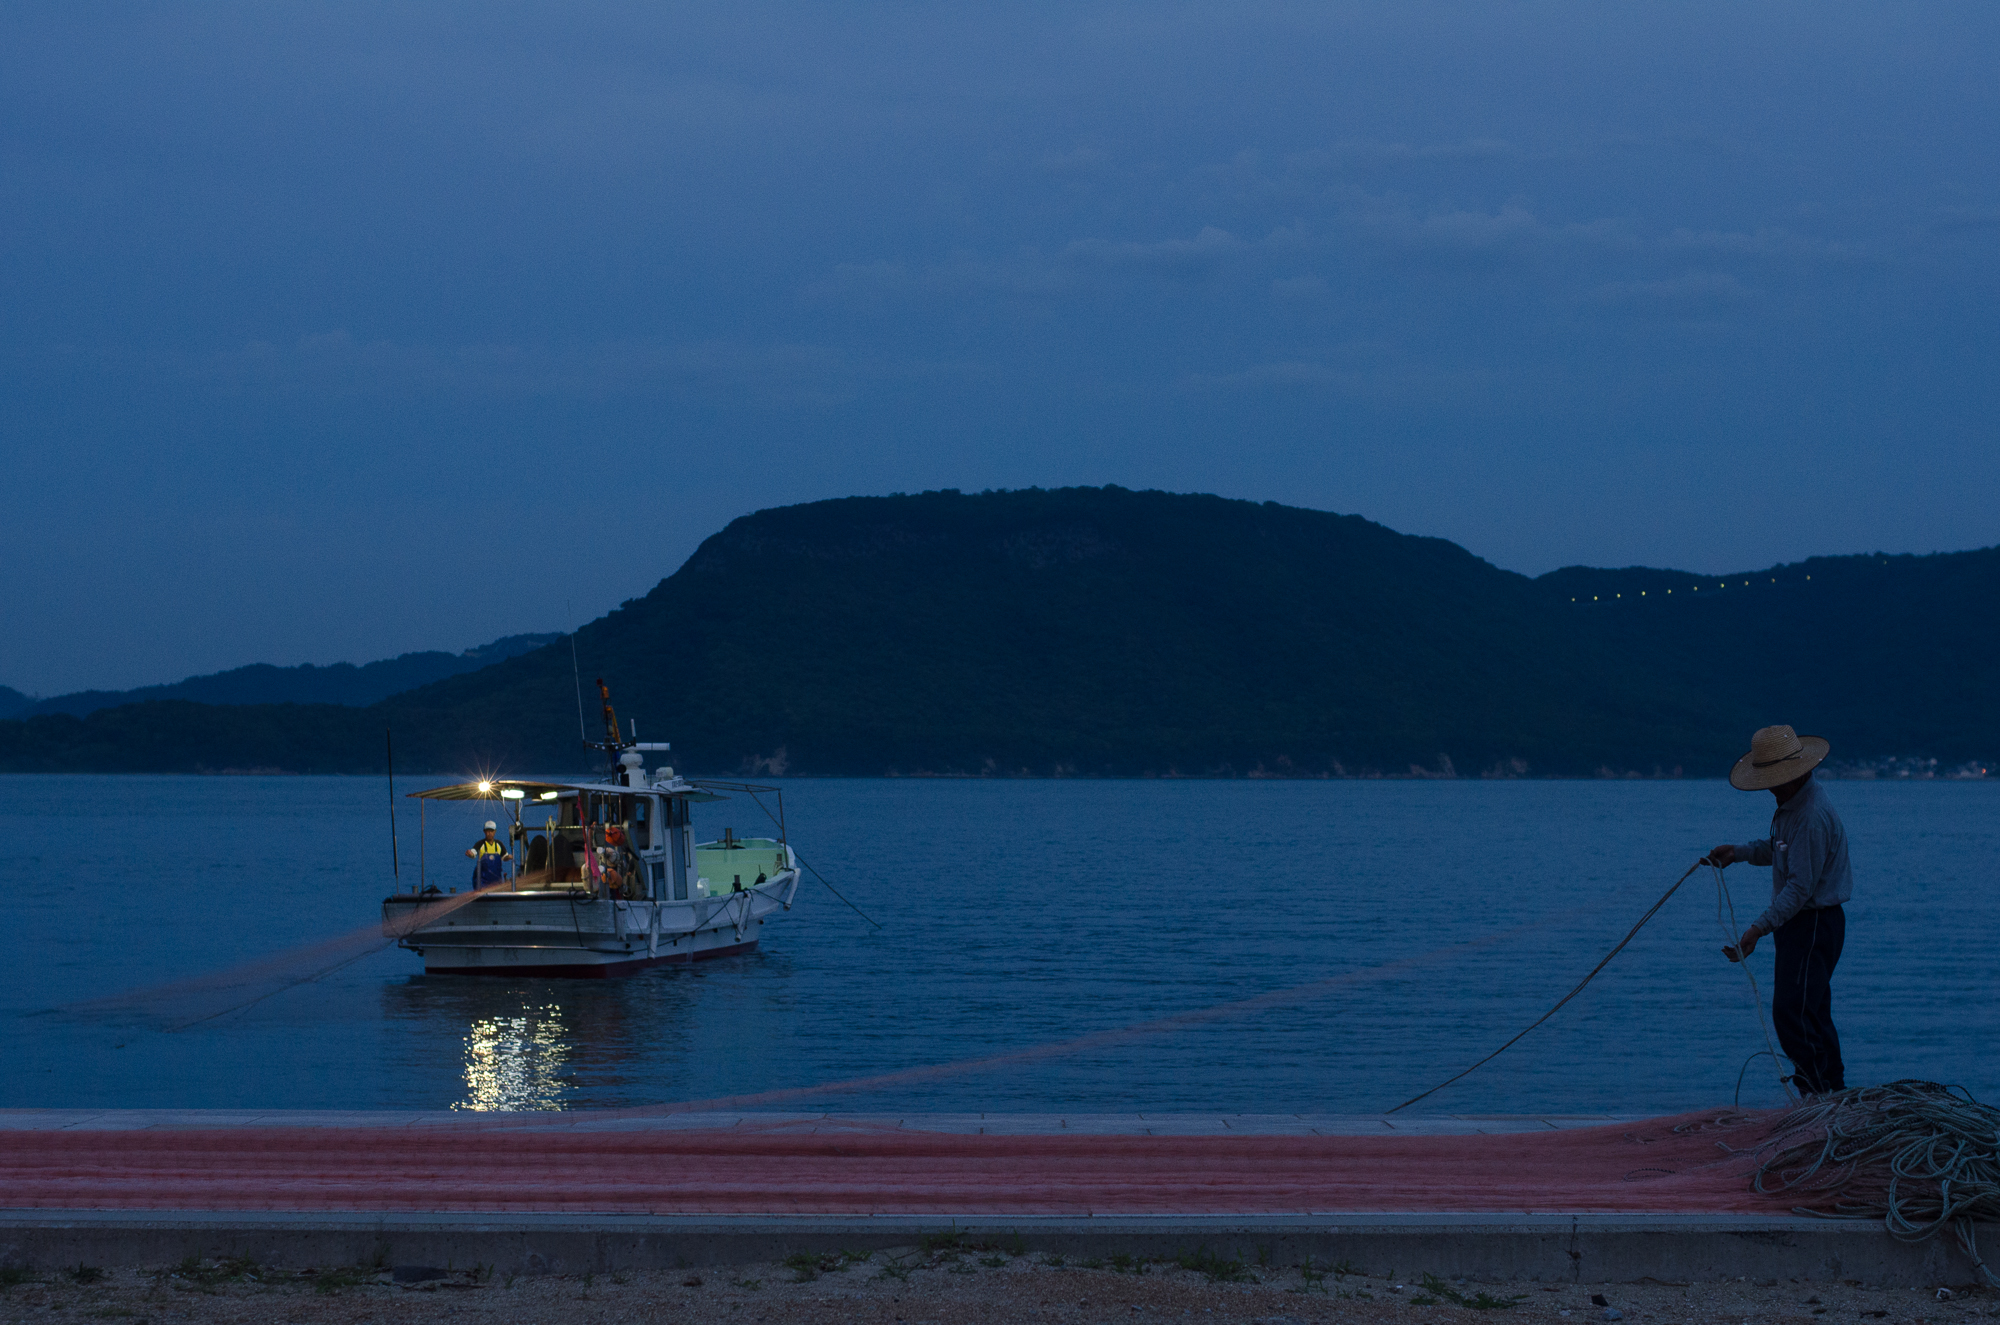 Locals installing protective netting at the beachside in Megijima, Japan (Photo: Patrick M. Lydon)